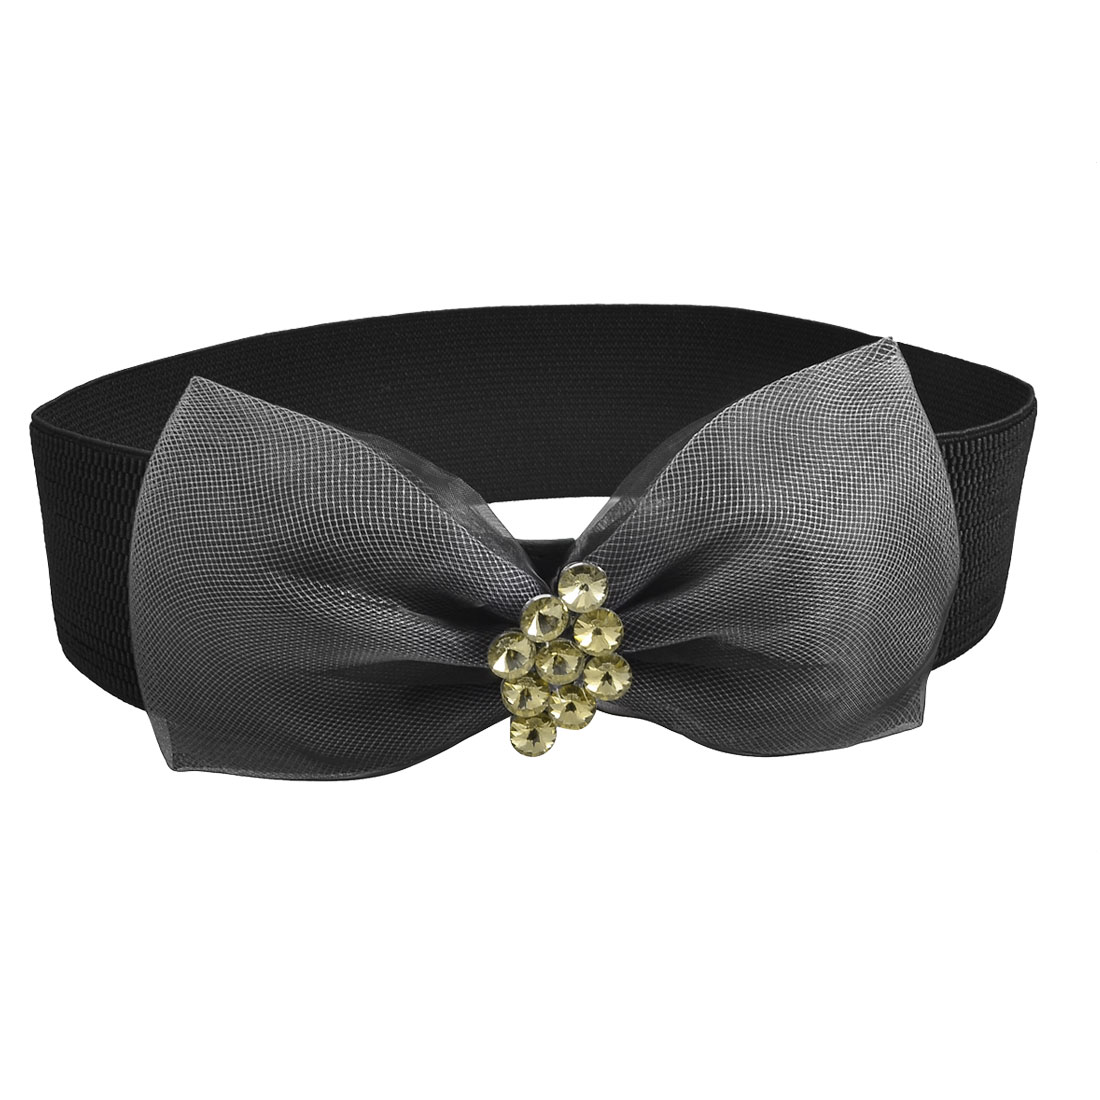 Lady Press Stud Button Rhinestone Bowknot Decorated Black Stretchy Cinch Belt